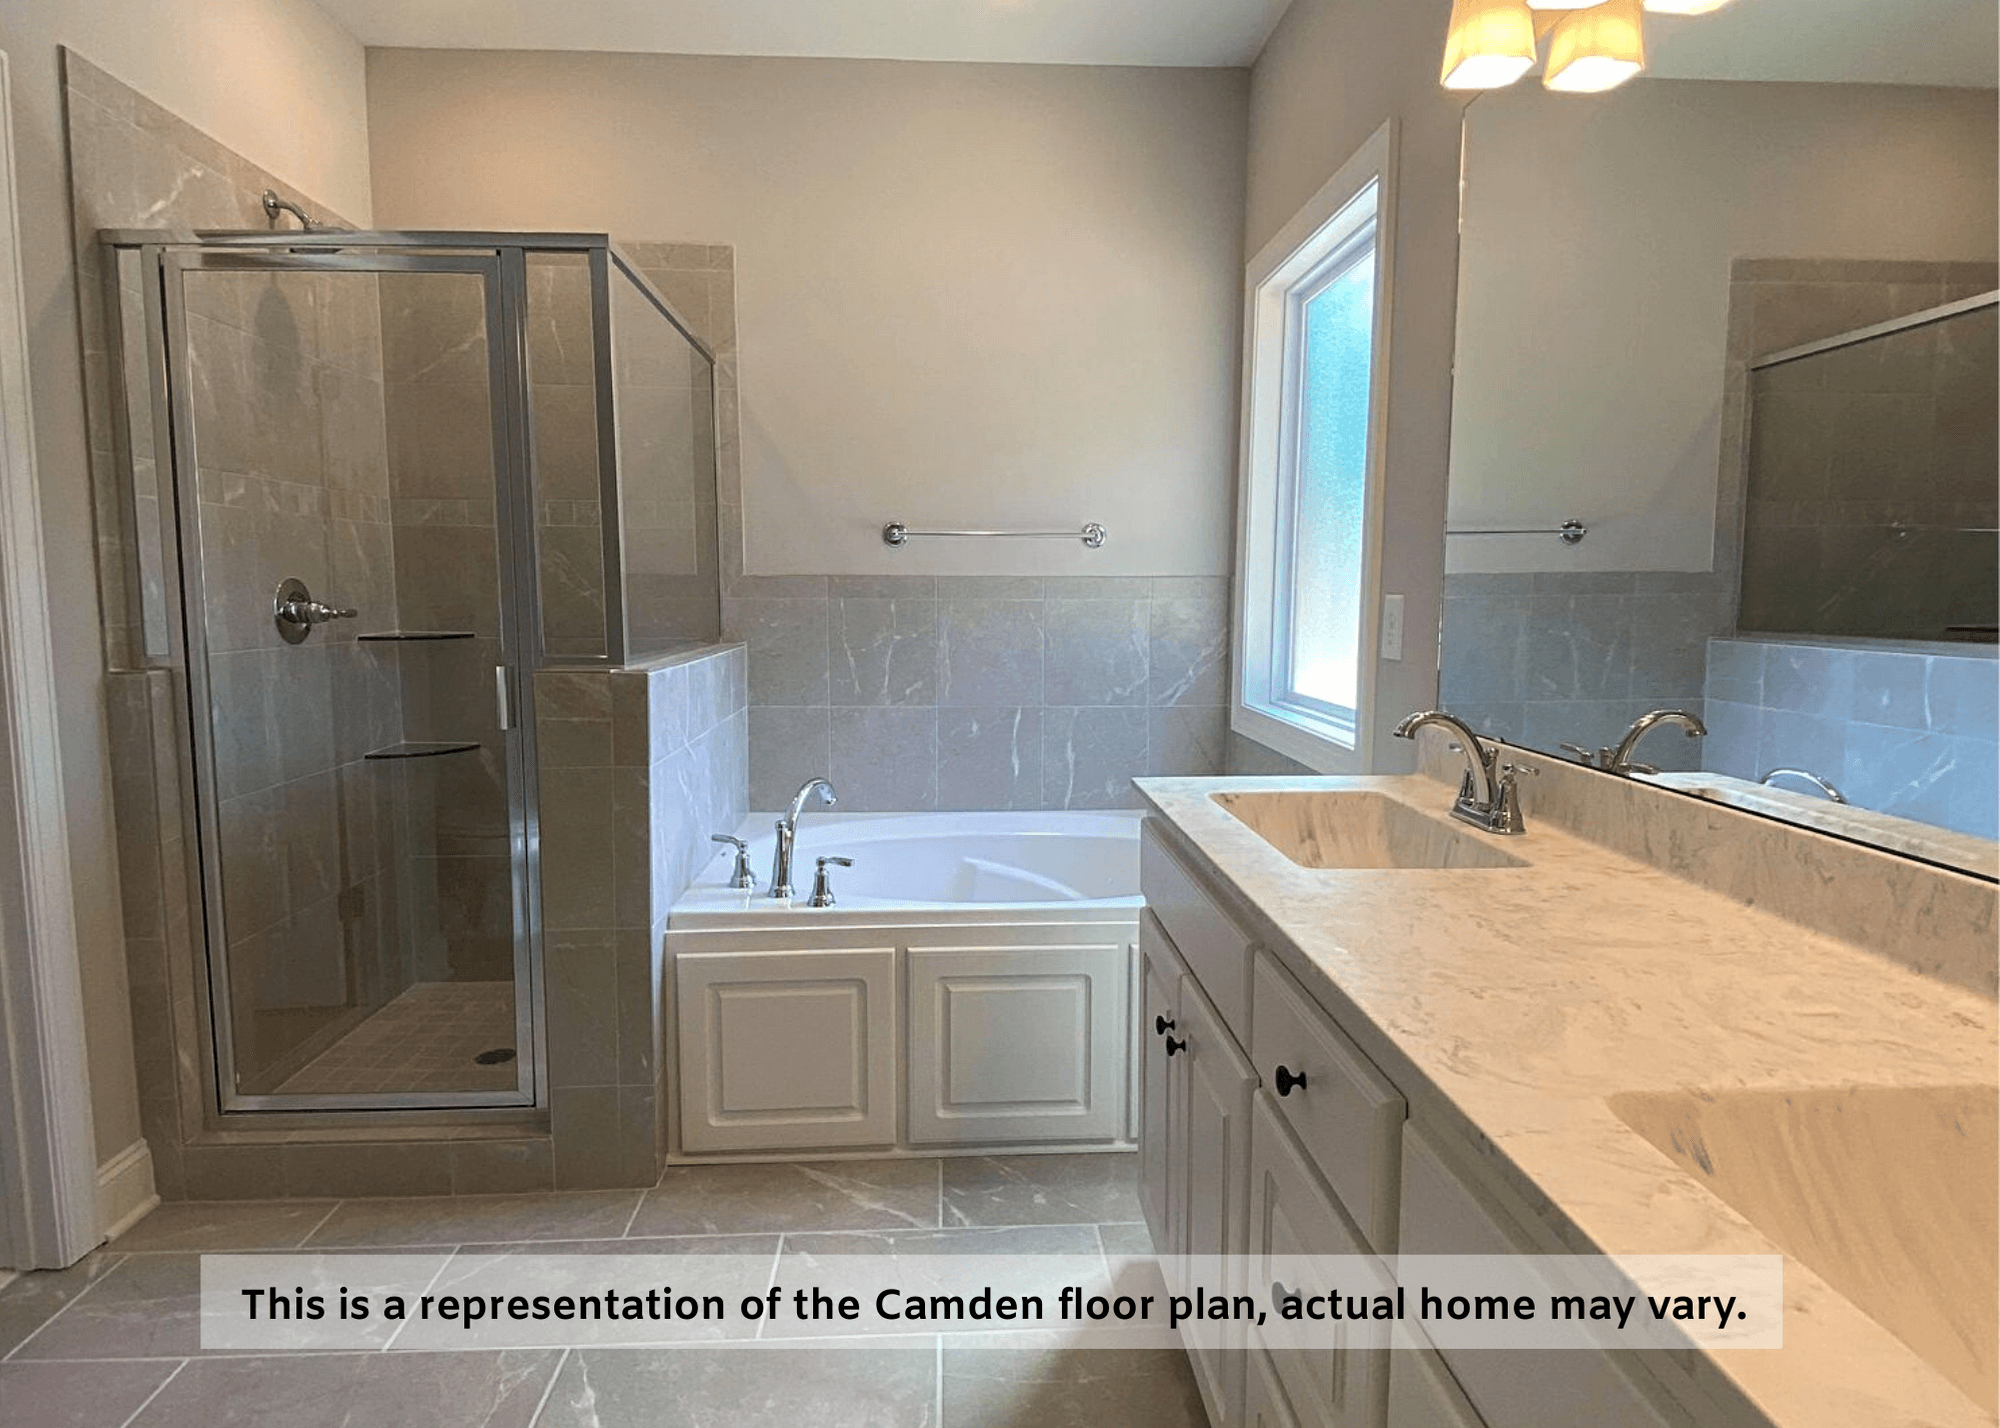 Bathroom featured in The Camden FE By Four Seasons Contractors in Rocky Mount, NC